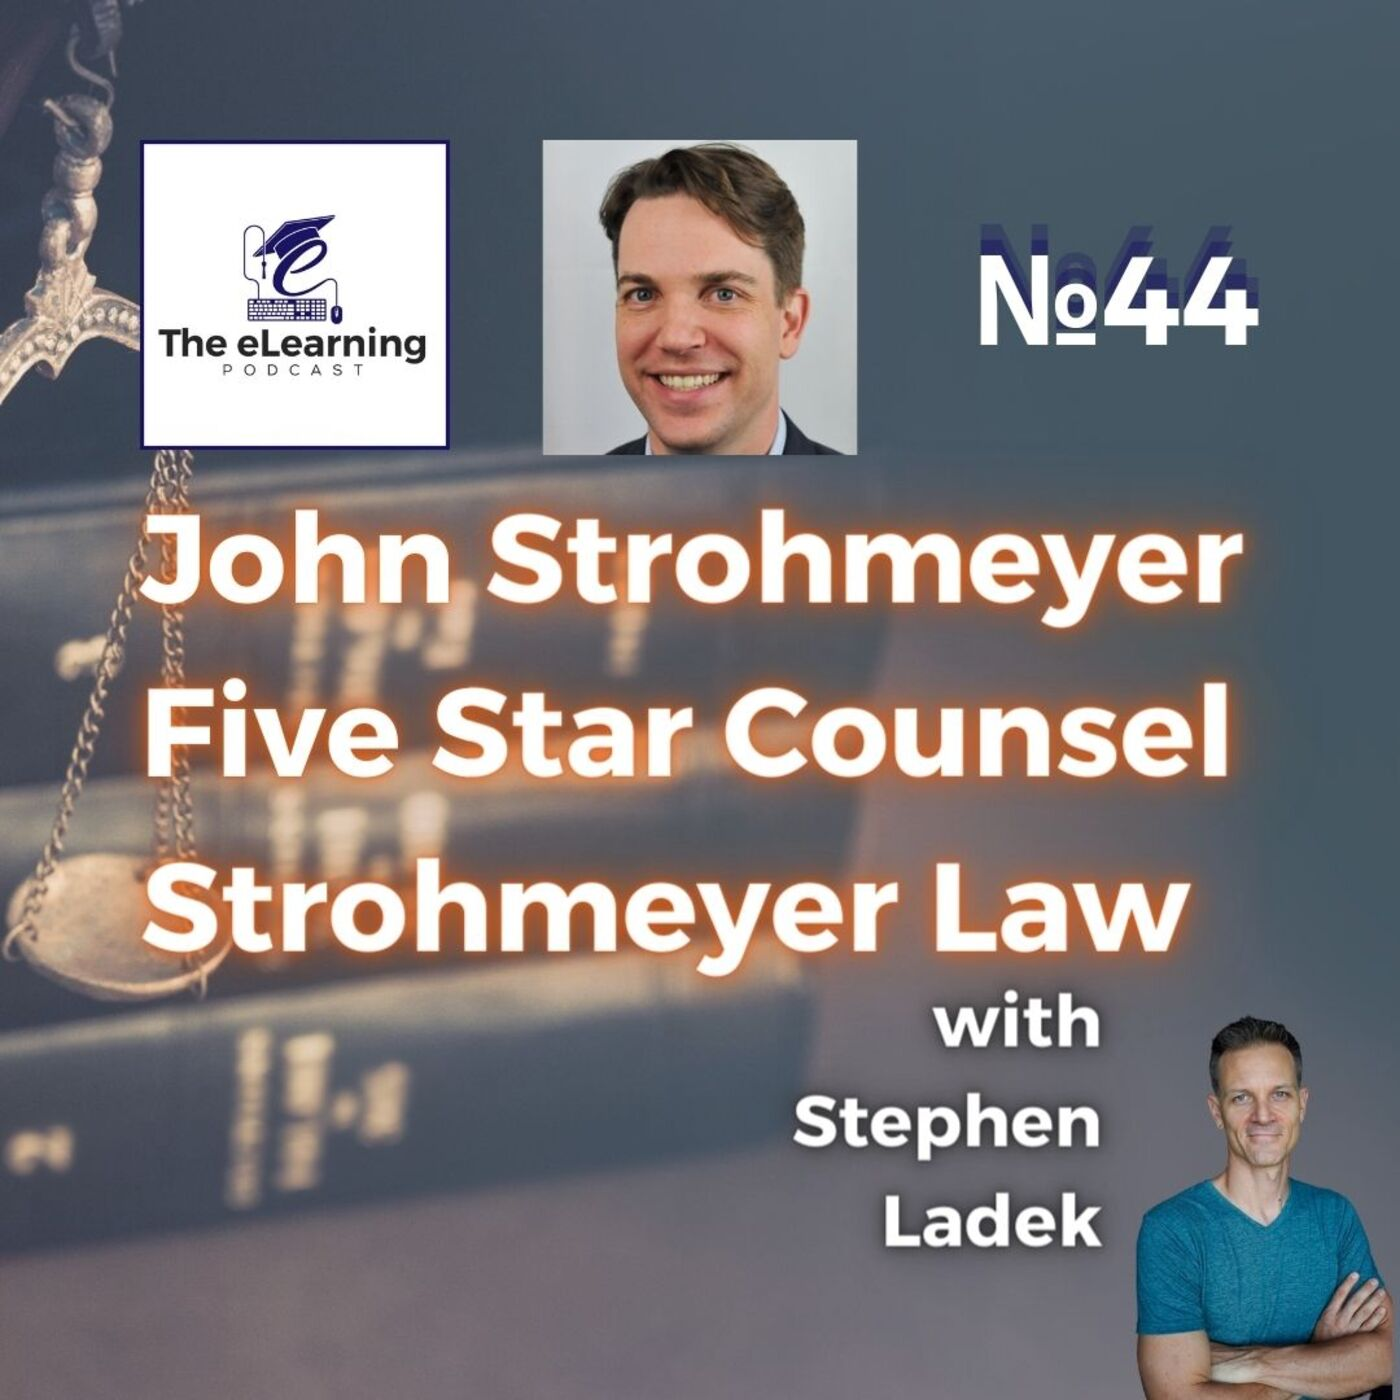 Delivering exceptional professional service with John Strohmeyer from Five Star Counsel and Strohmeyer Law